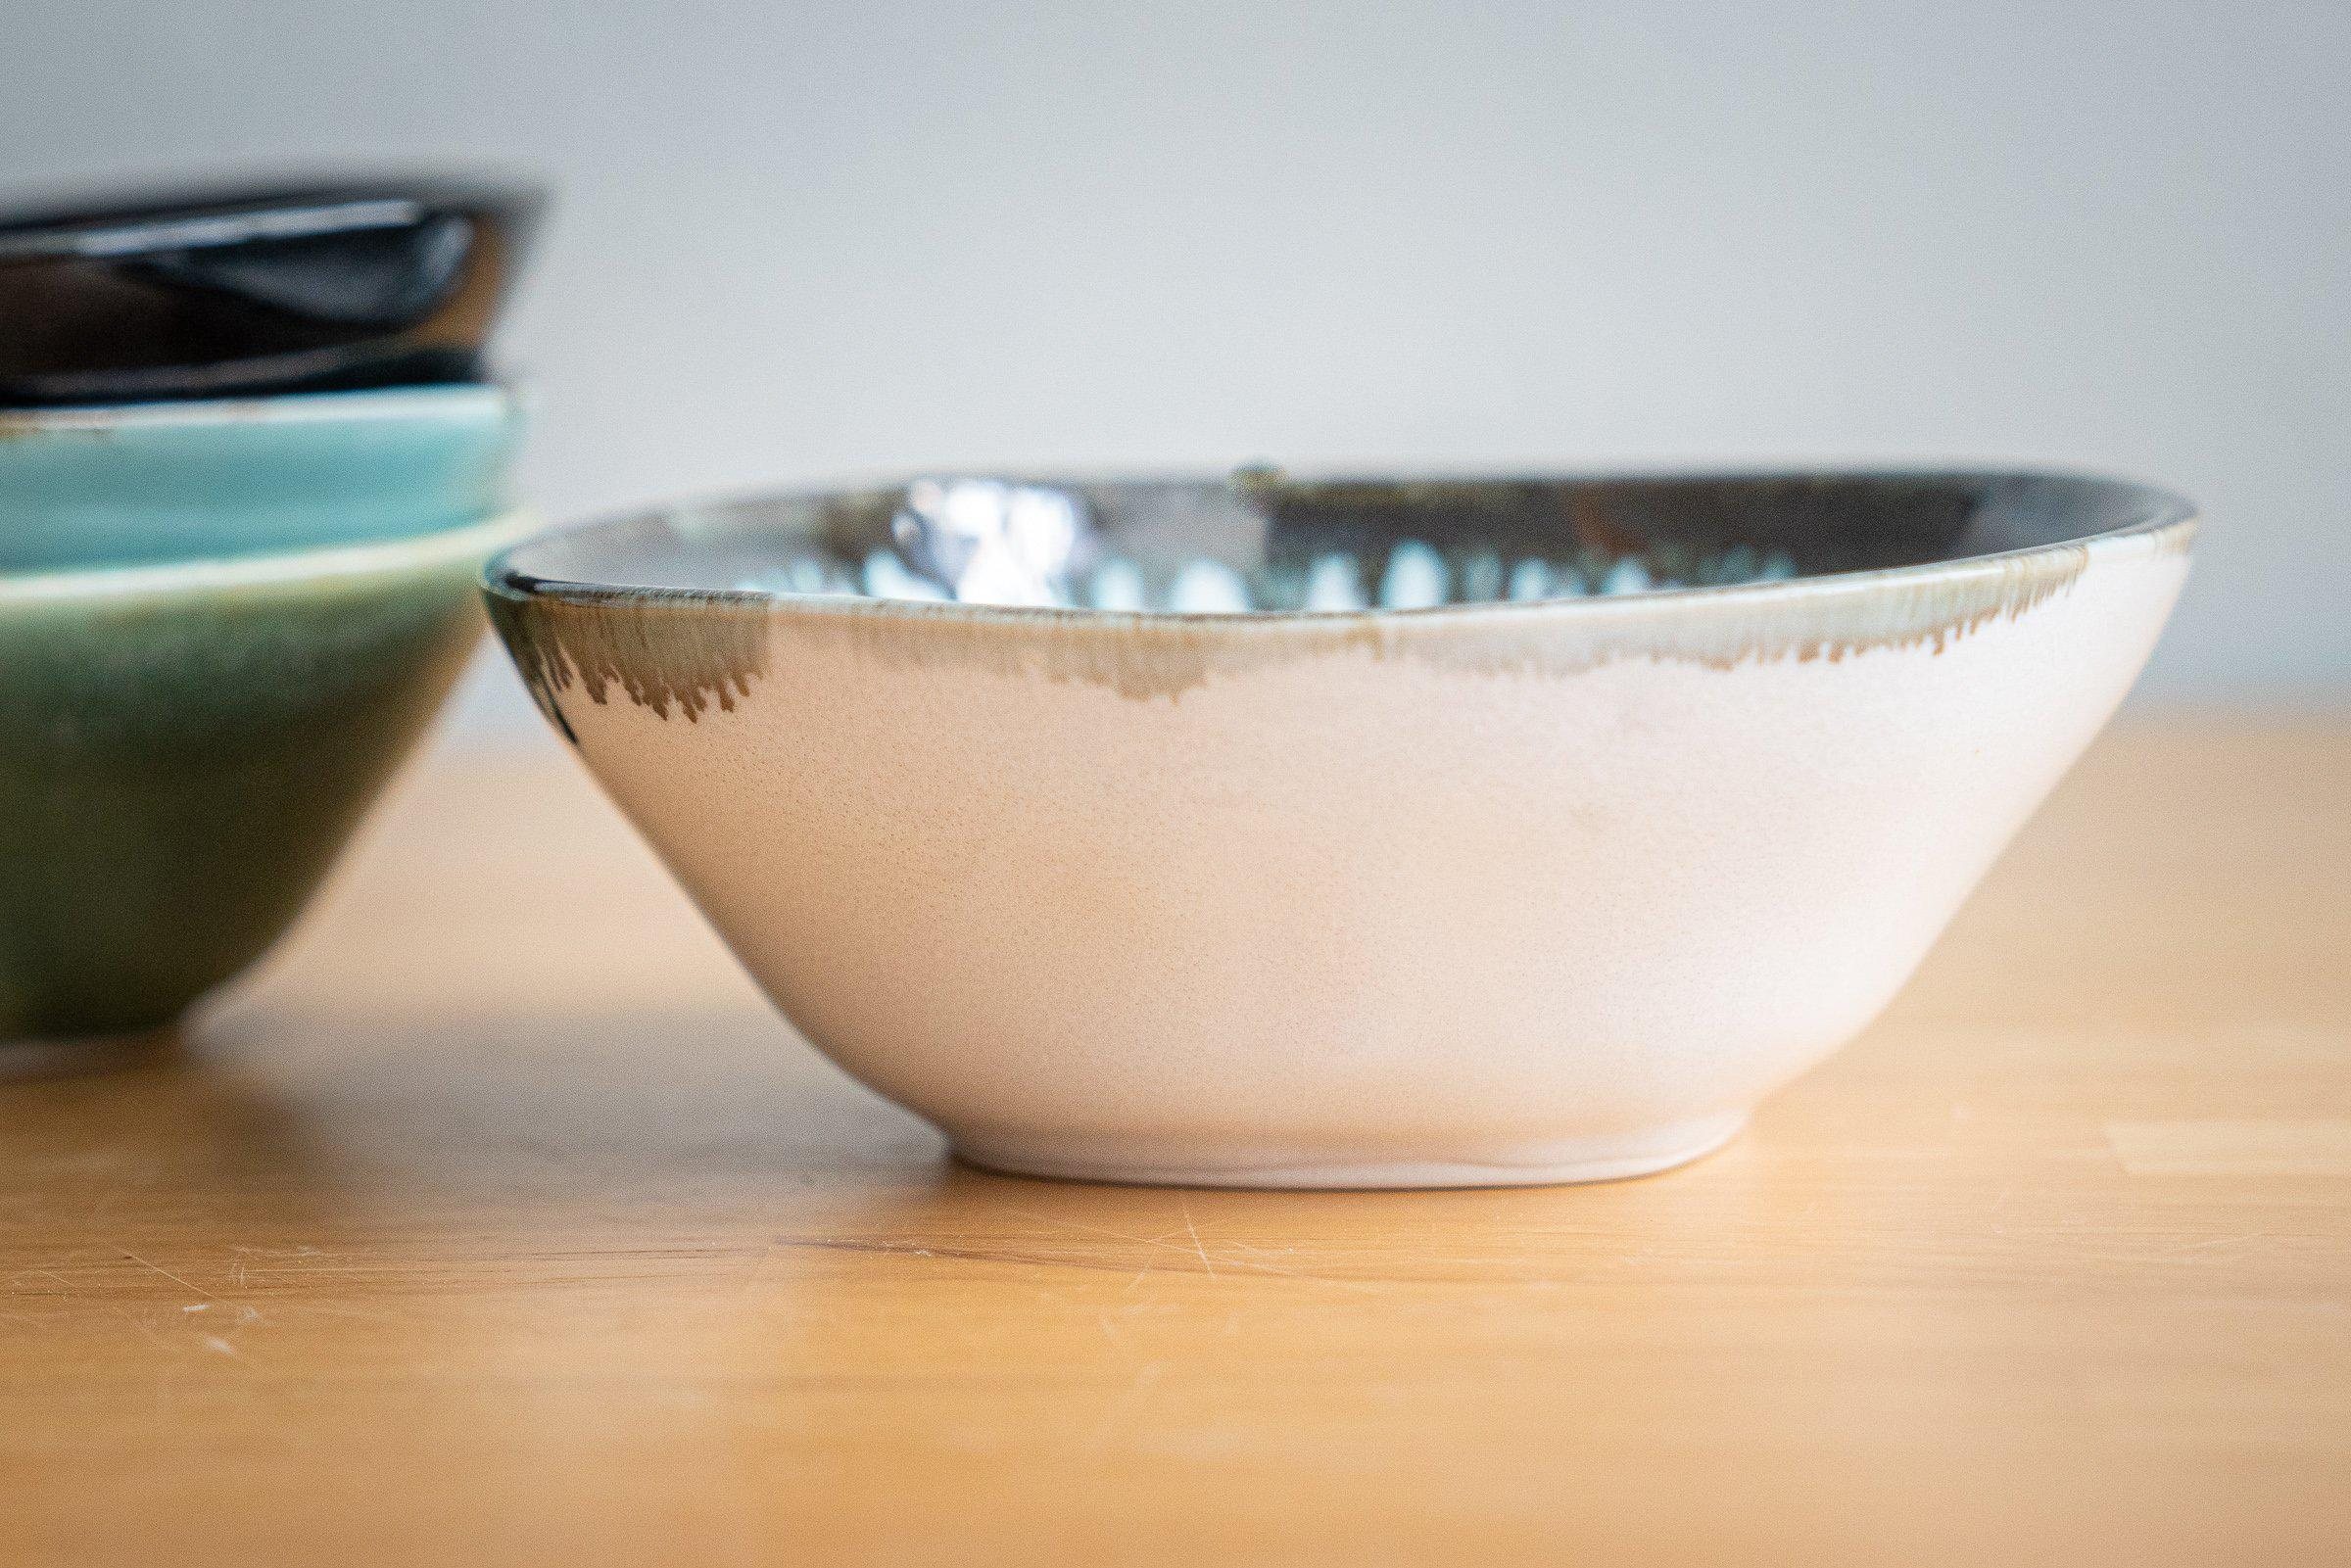 Chowder Bowl - Edgecomb Potters